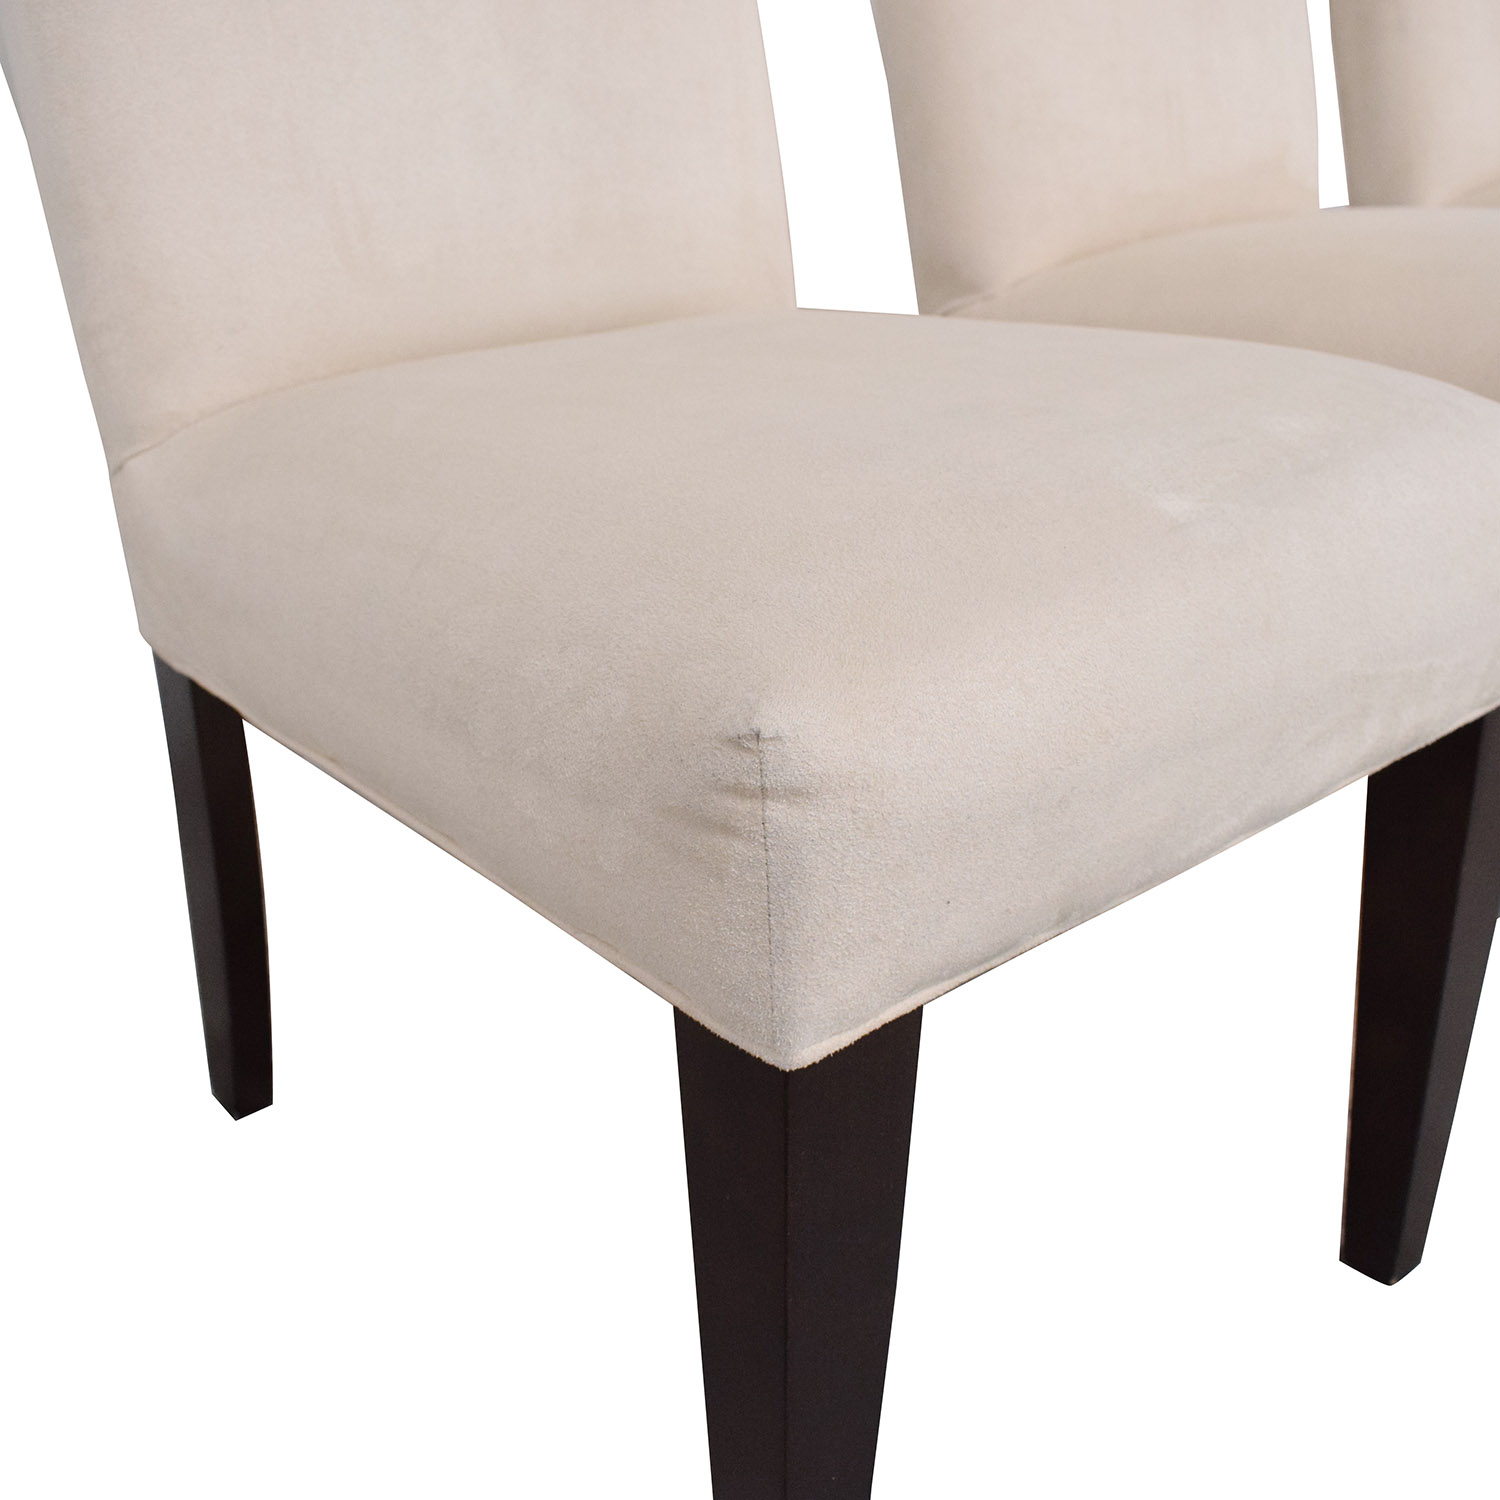 Mitchell Gold + Bob Williams Mitchell Gold + Bob Williams Anthony Side Dining Chairs used